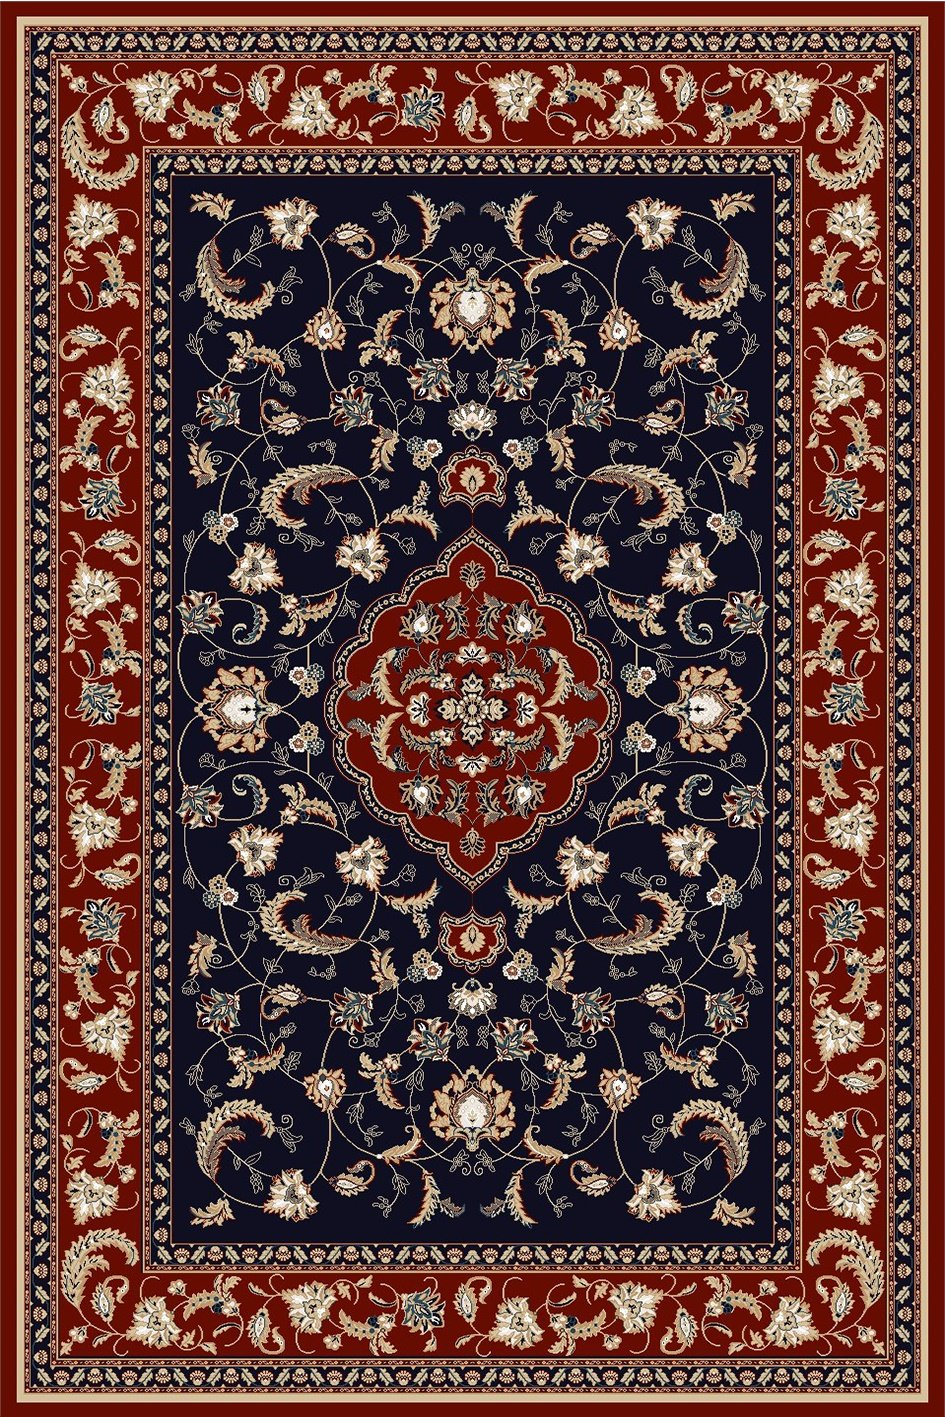 Maxmar Carpet Gulendam Series Navy Blue Red Decorative Area Rug 3022